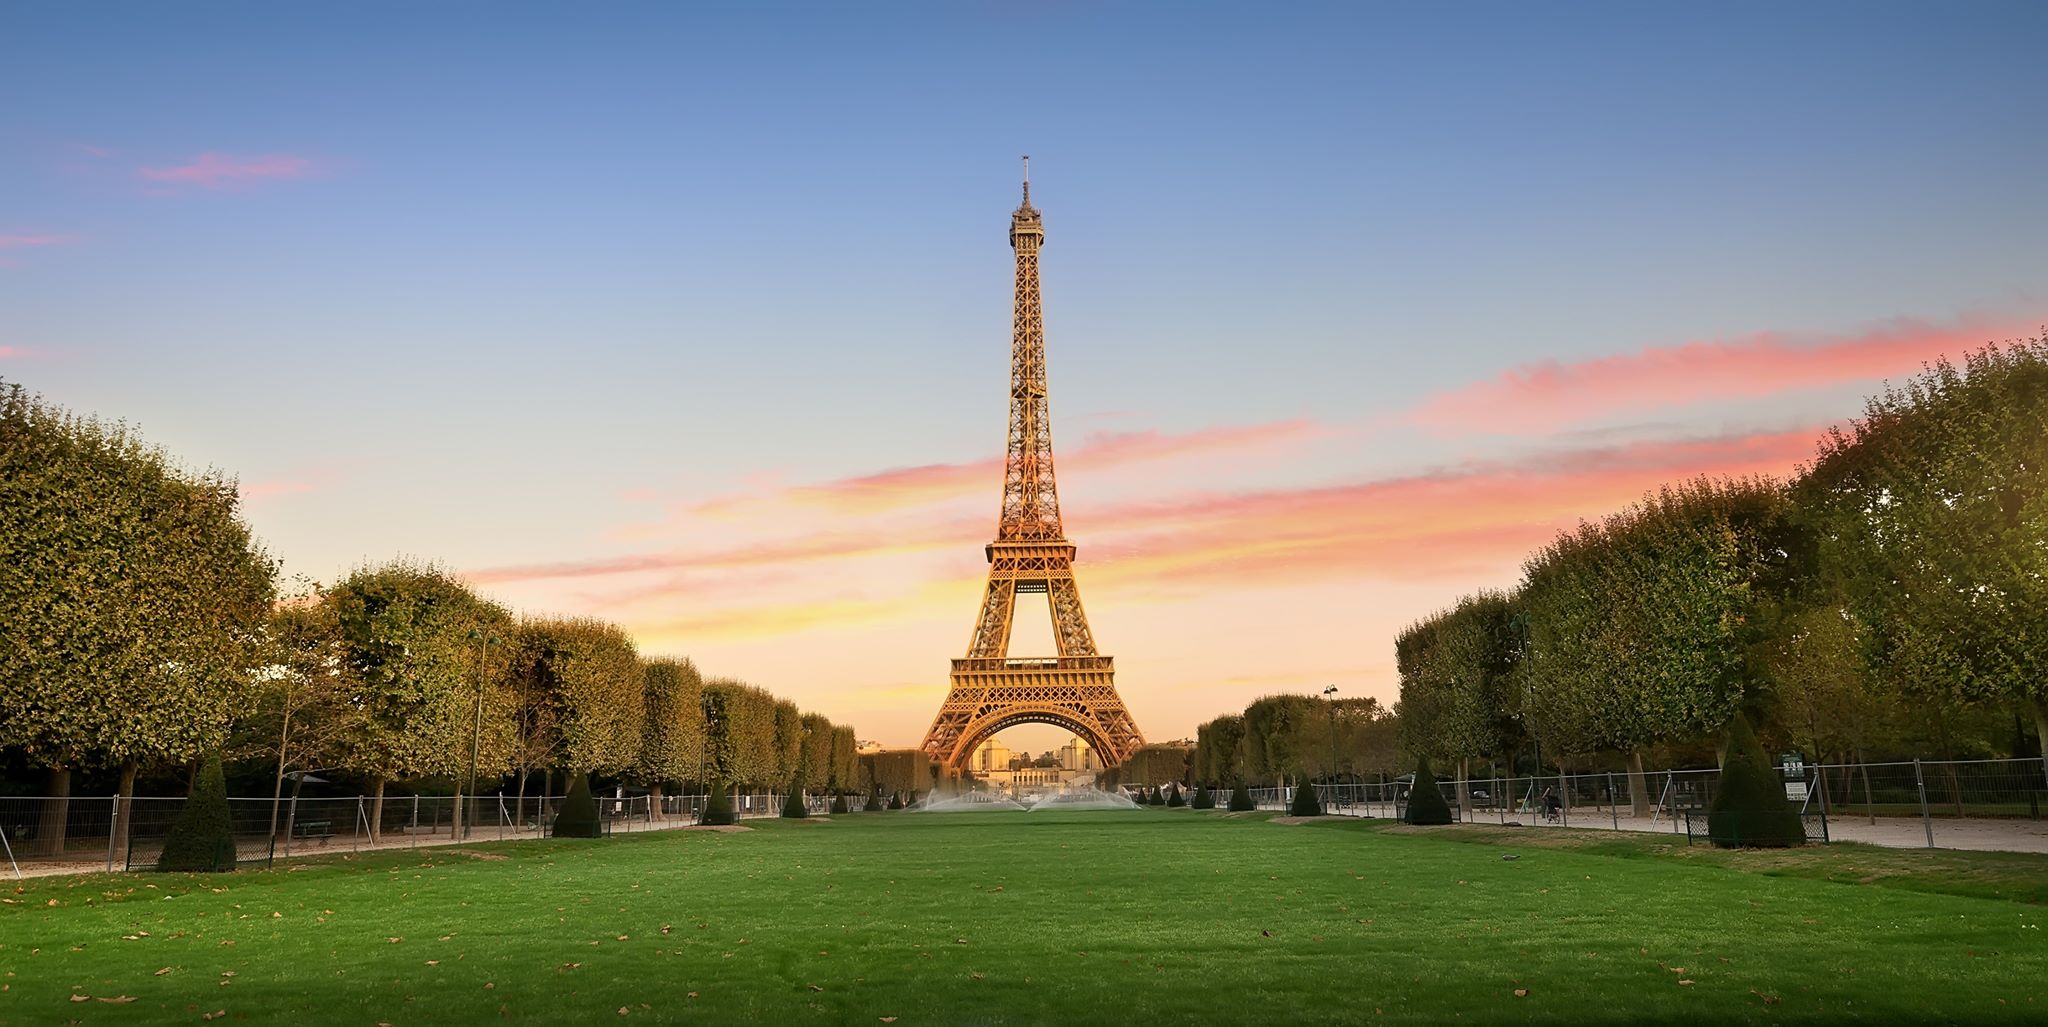 On your Paris 3 day itinerary make a stop at the Eiffel Tower